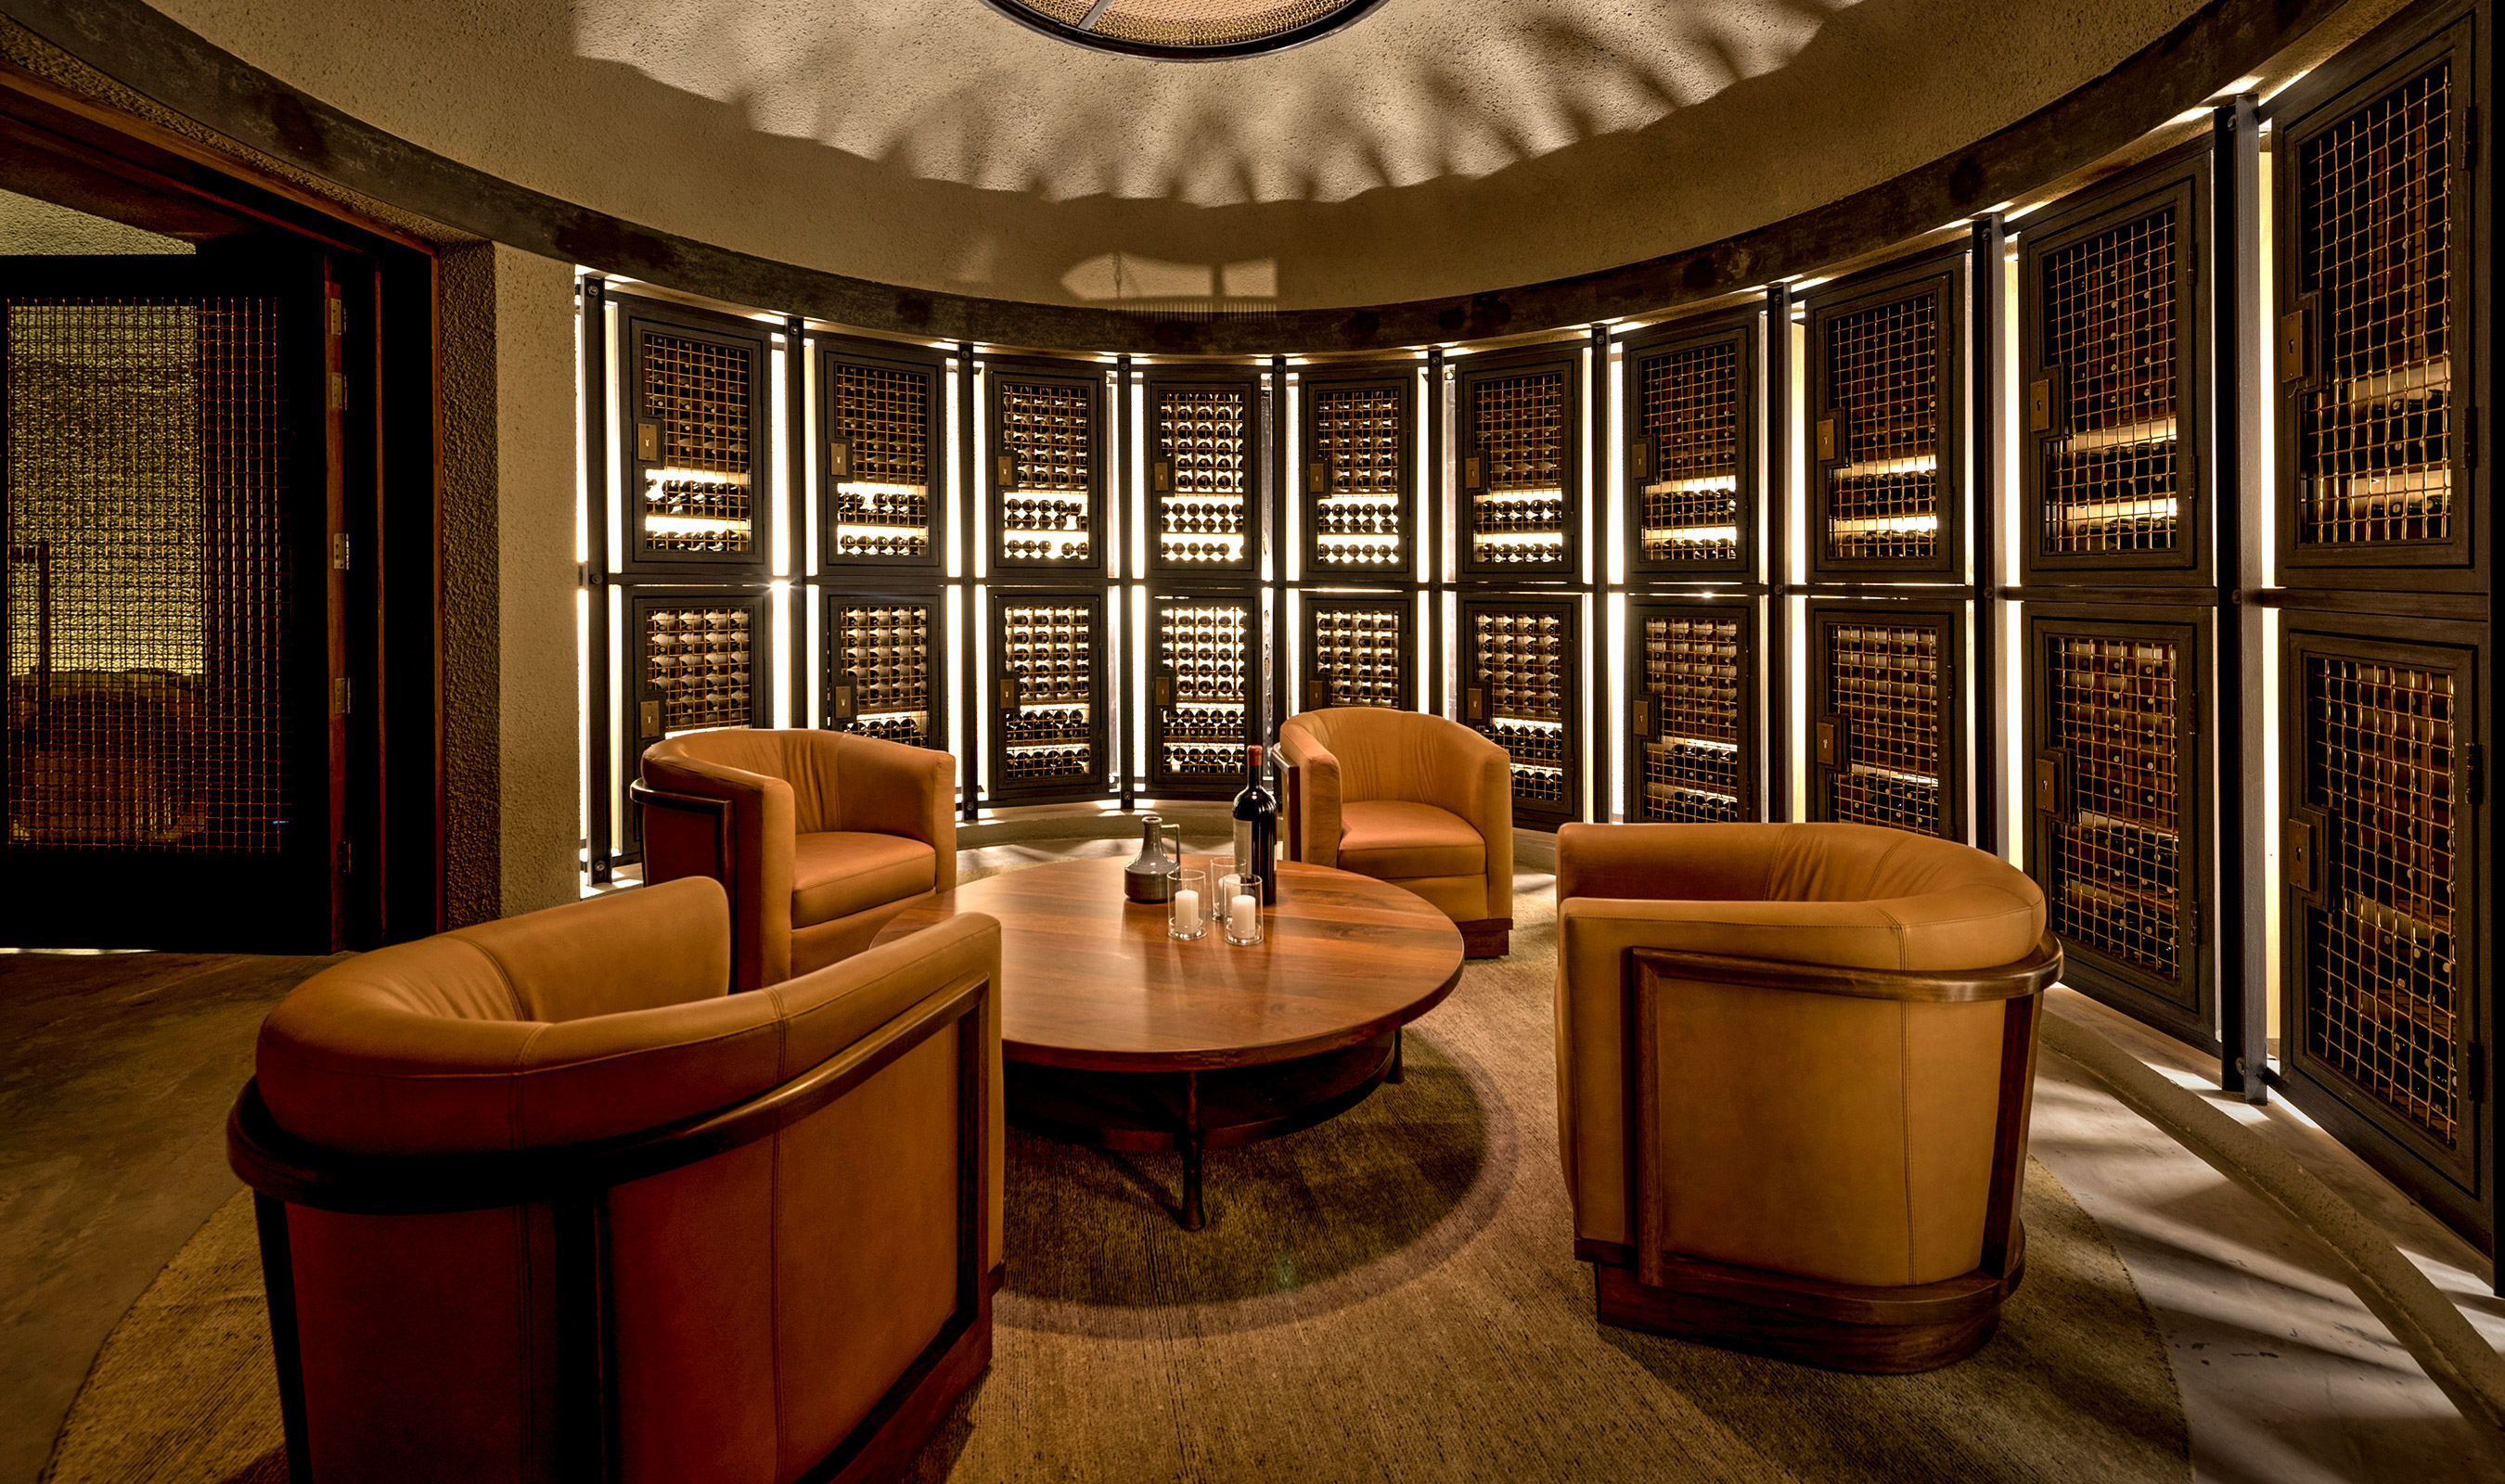 In an exclusive club area, Banker Wire's L-62 woven wire mesh in bronze is utilized as cabinetry protecting various bottles of wine.